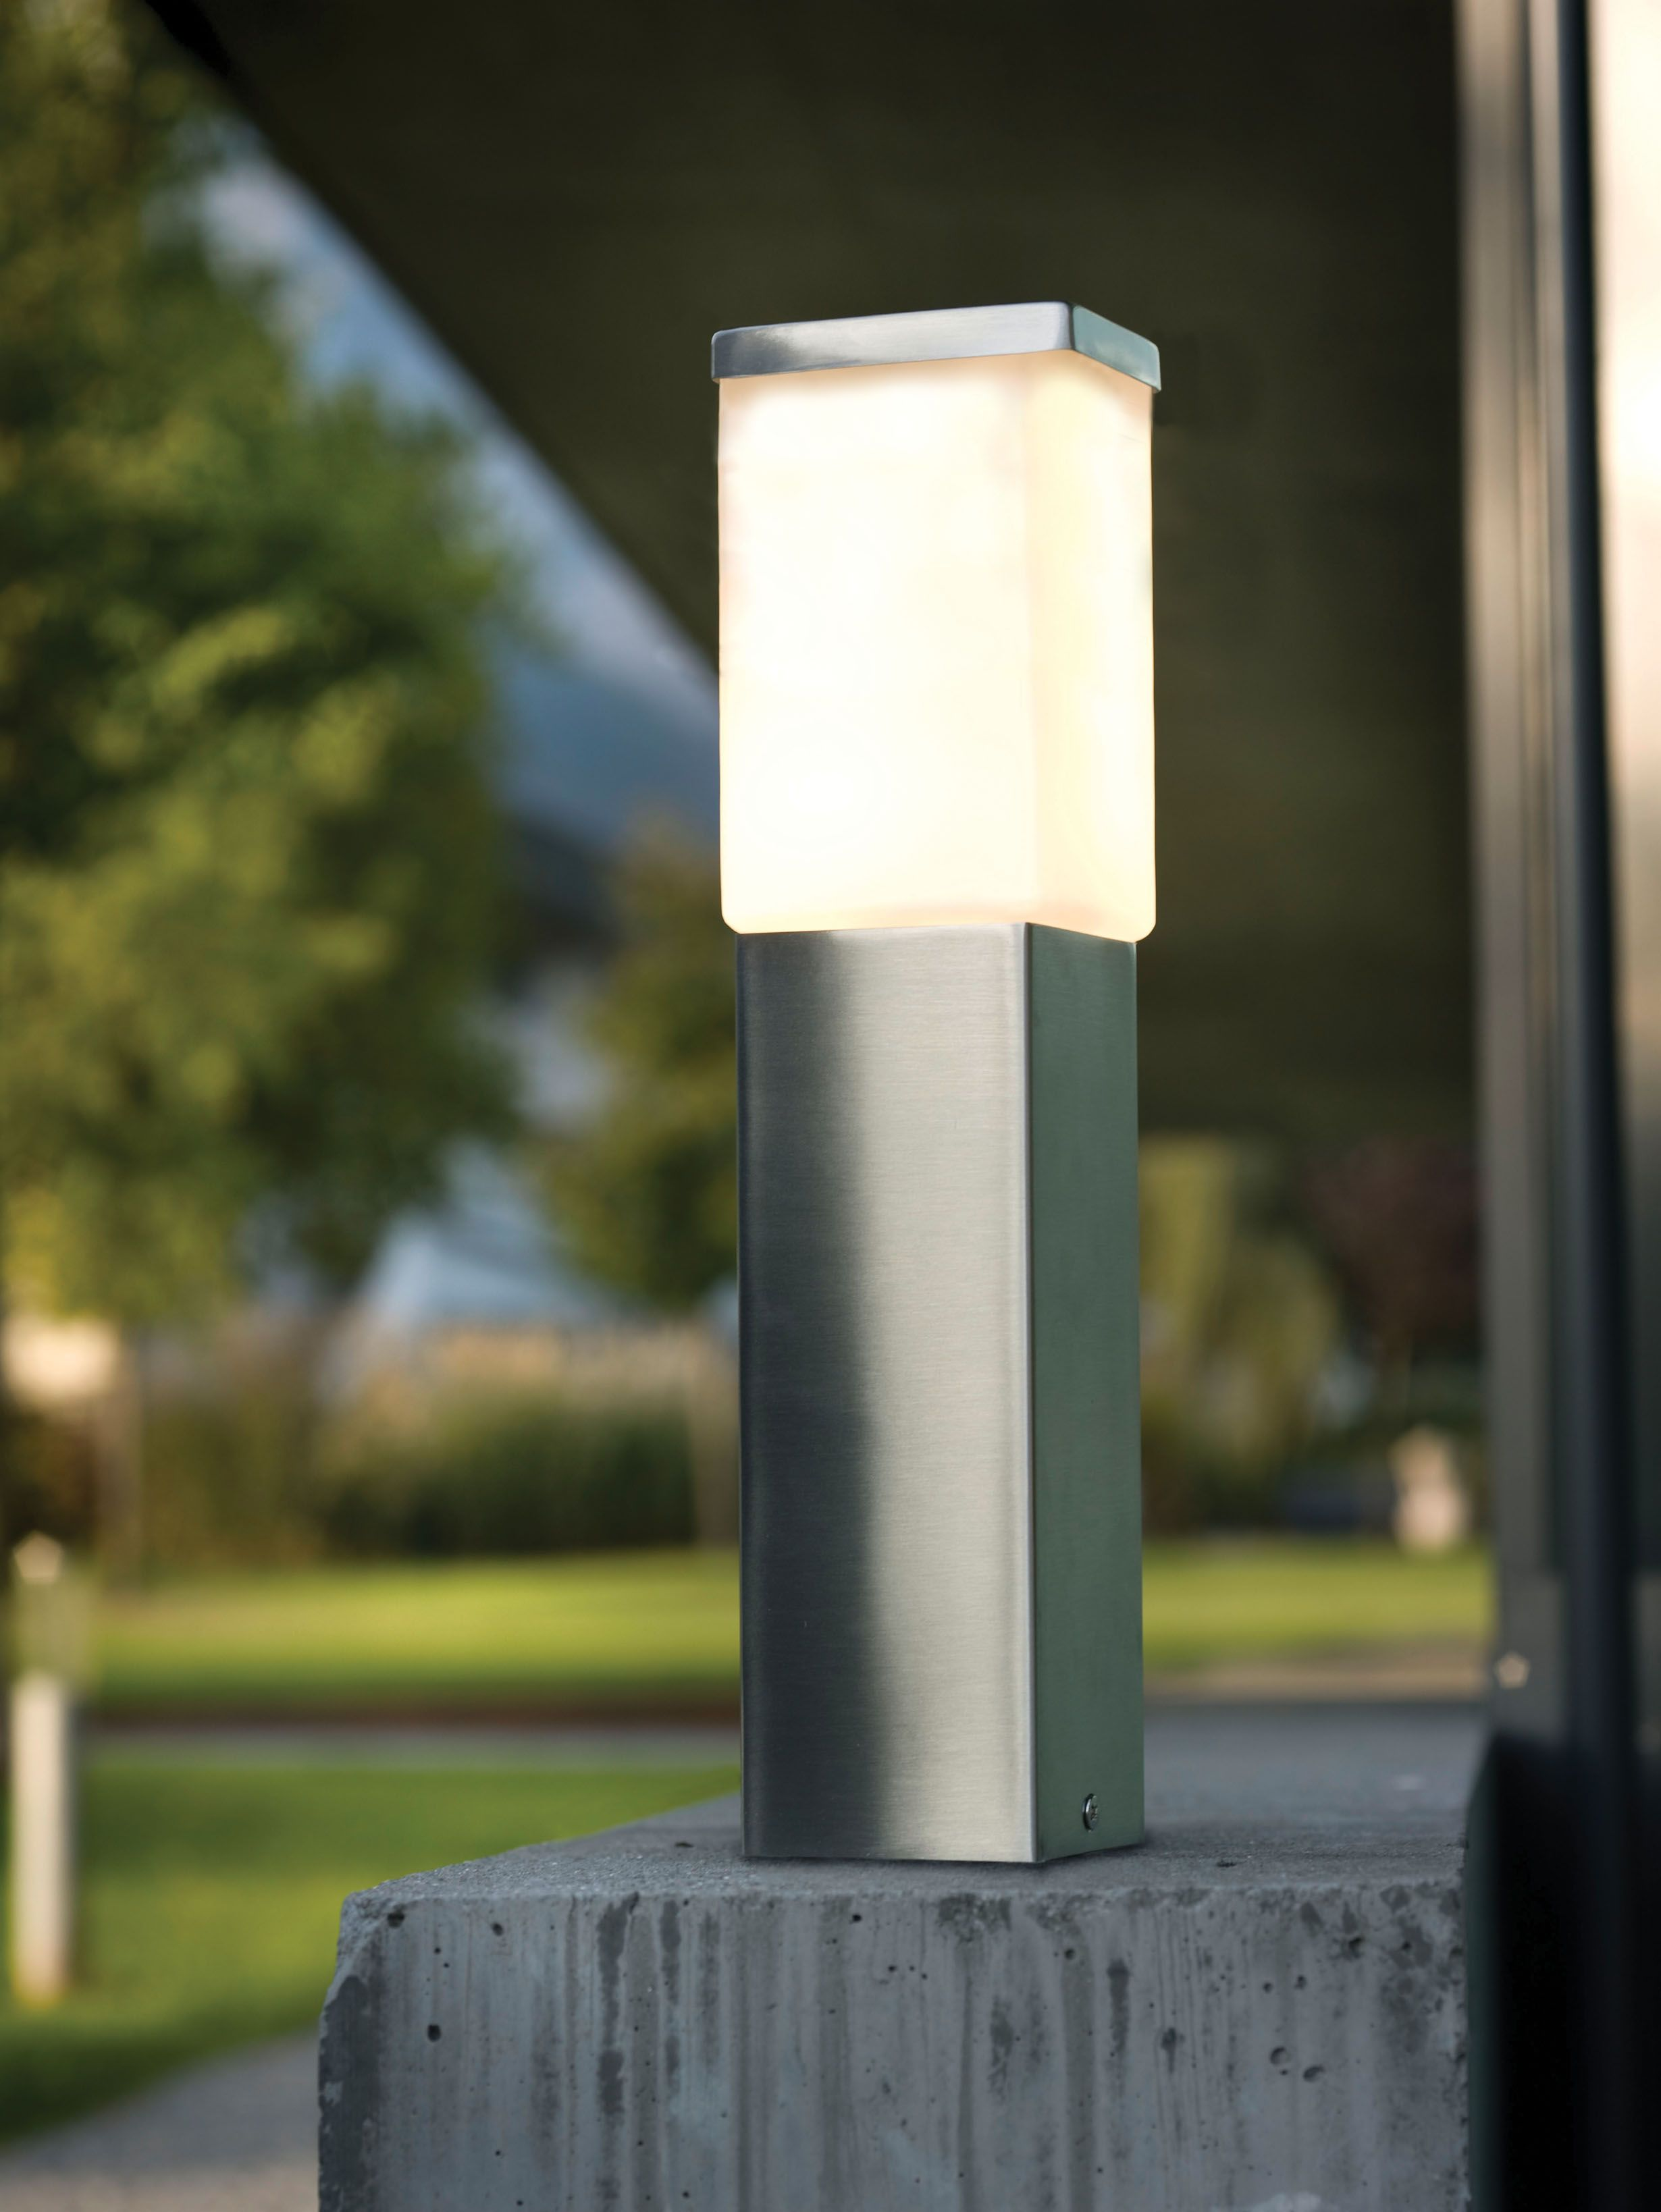 eglo 86388a calgary stainless steel outdoor post light outdoor